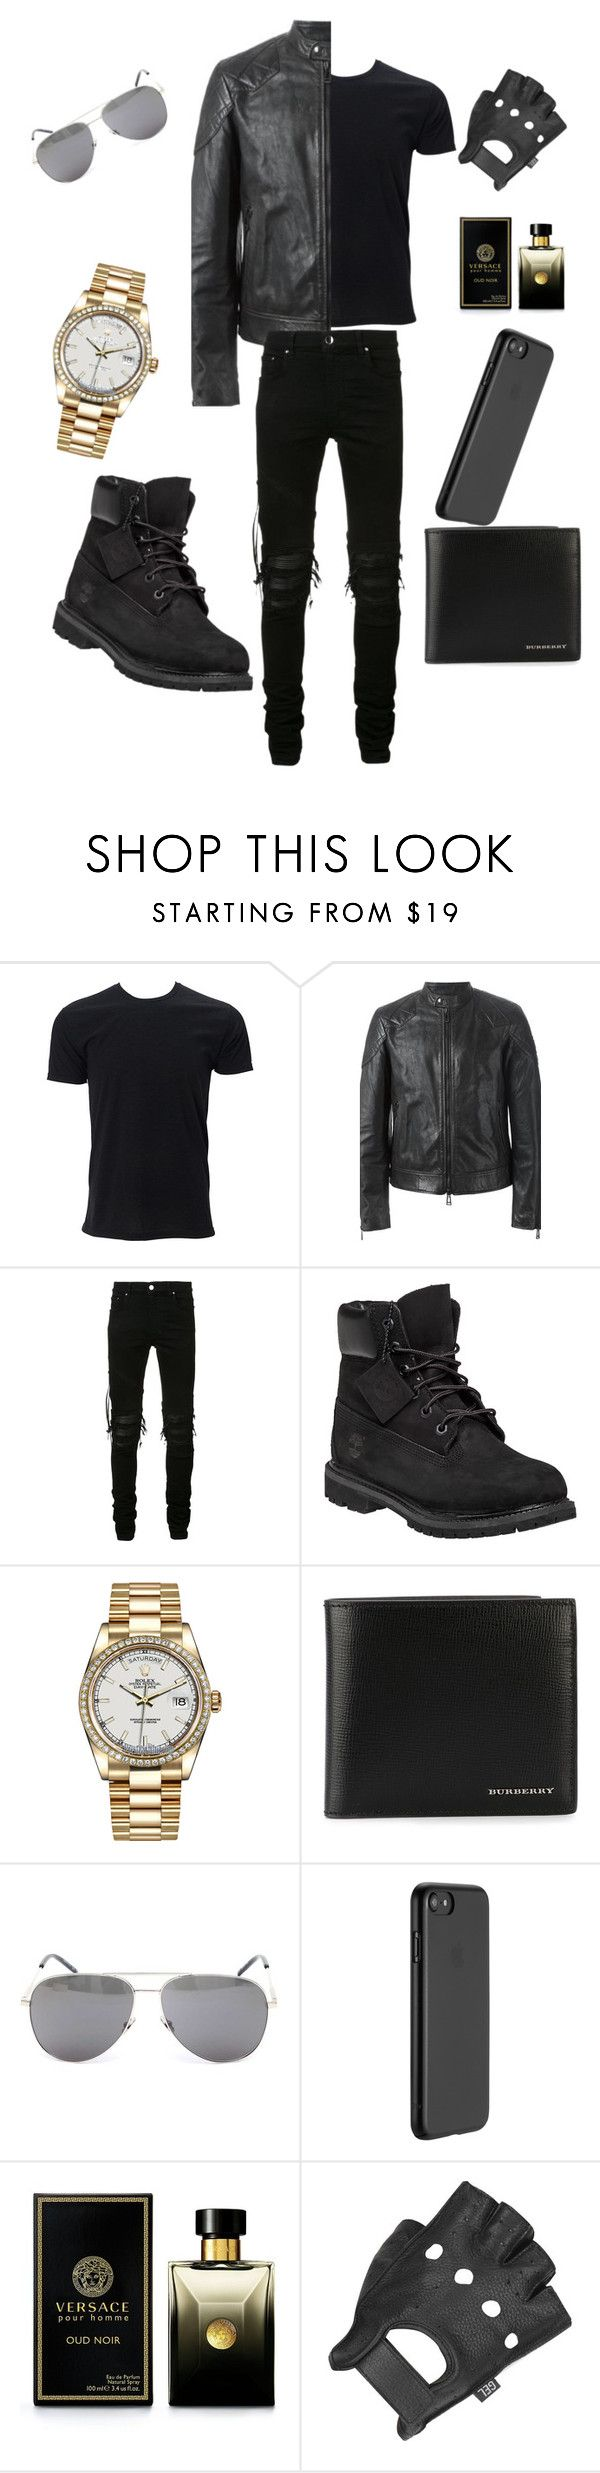 """""""Biker"""" by kaela-baby ❤ liked on Polyvore featuring Simplex Apparel, Belstaff, AMIRI, Timberland, Rolex, Burberry, Yves Saint Laurent, Just Mobile, Versace and Wilsons Leather"""